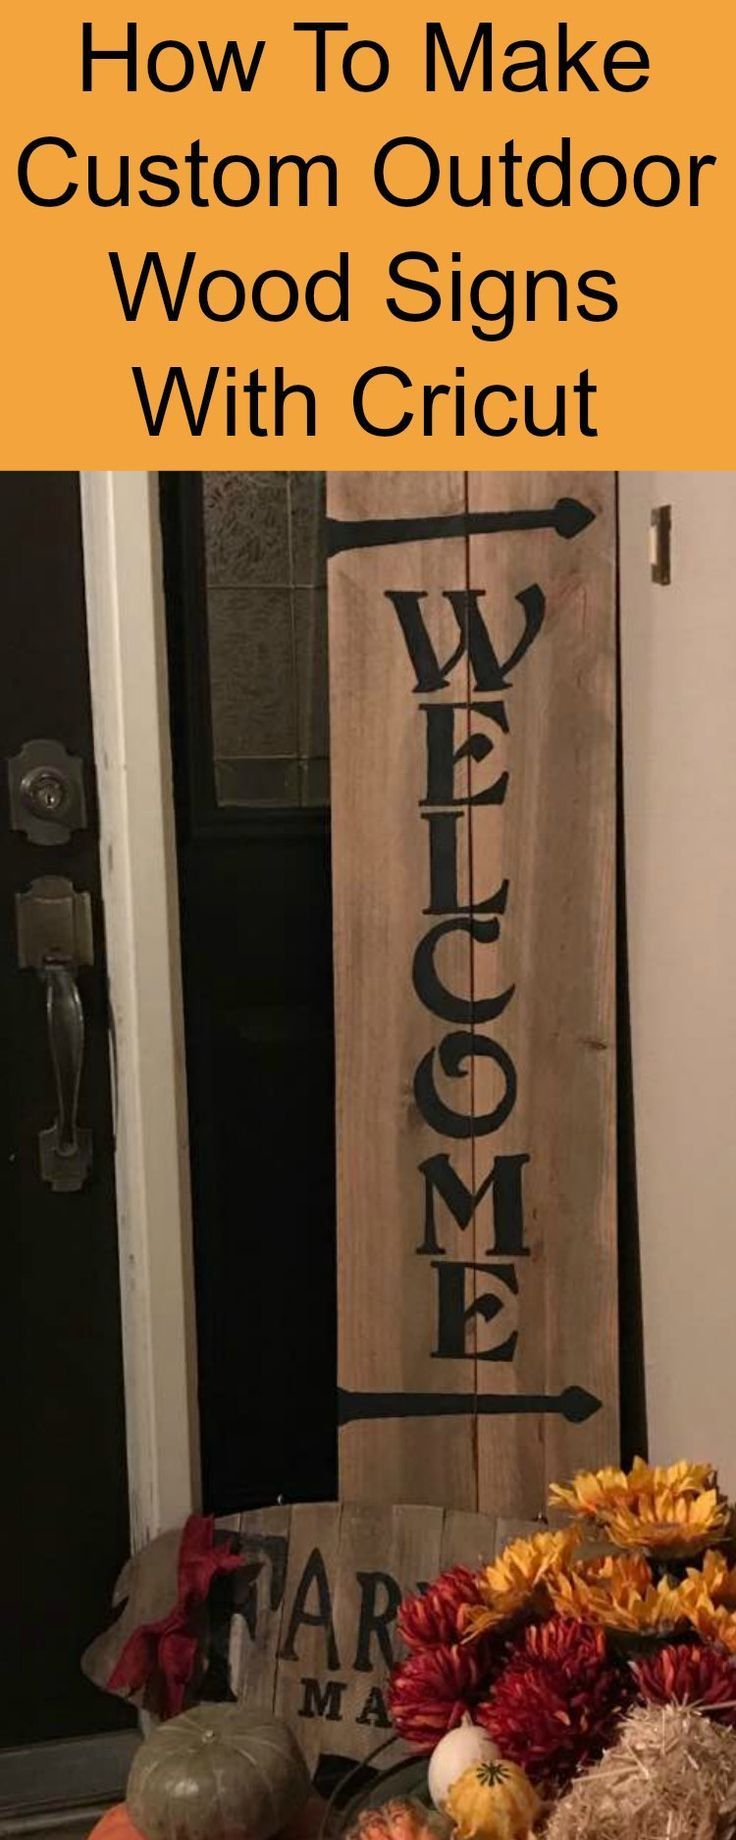 Create Wood Signs with Cricut Small Easy Wood Projects